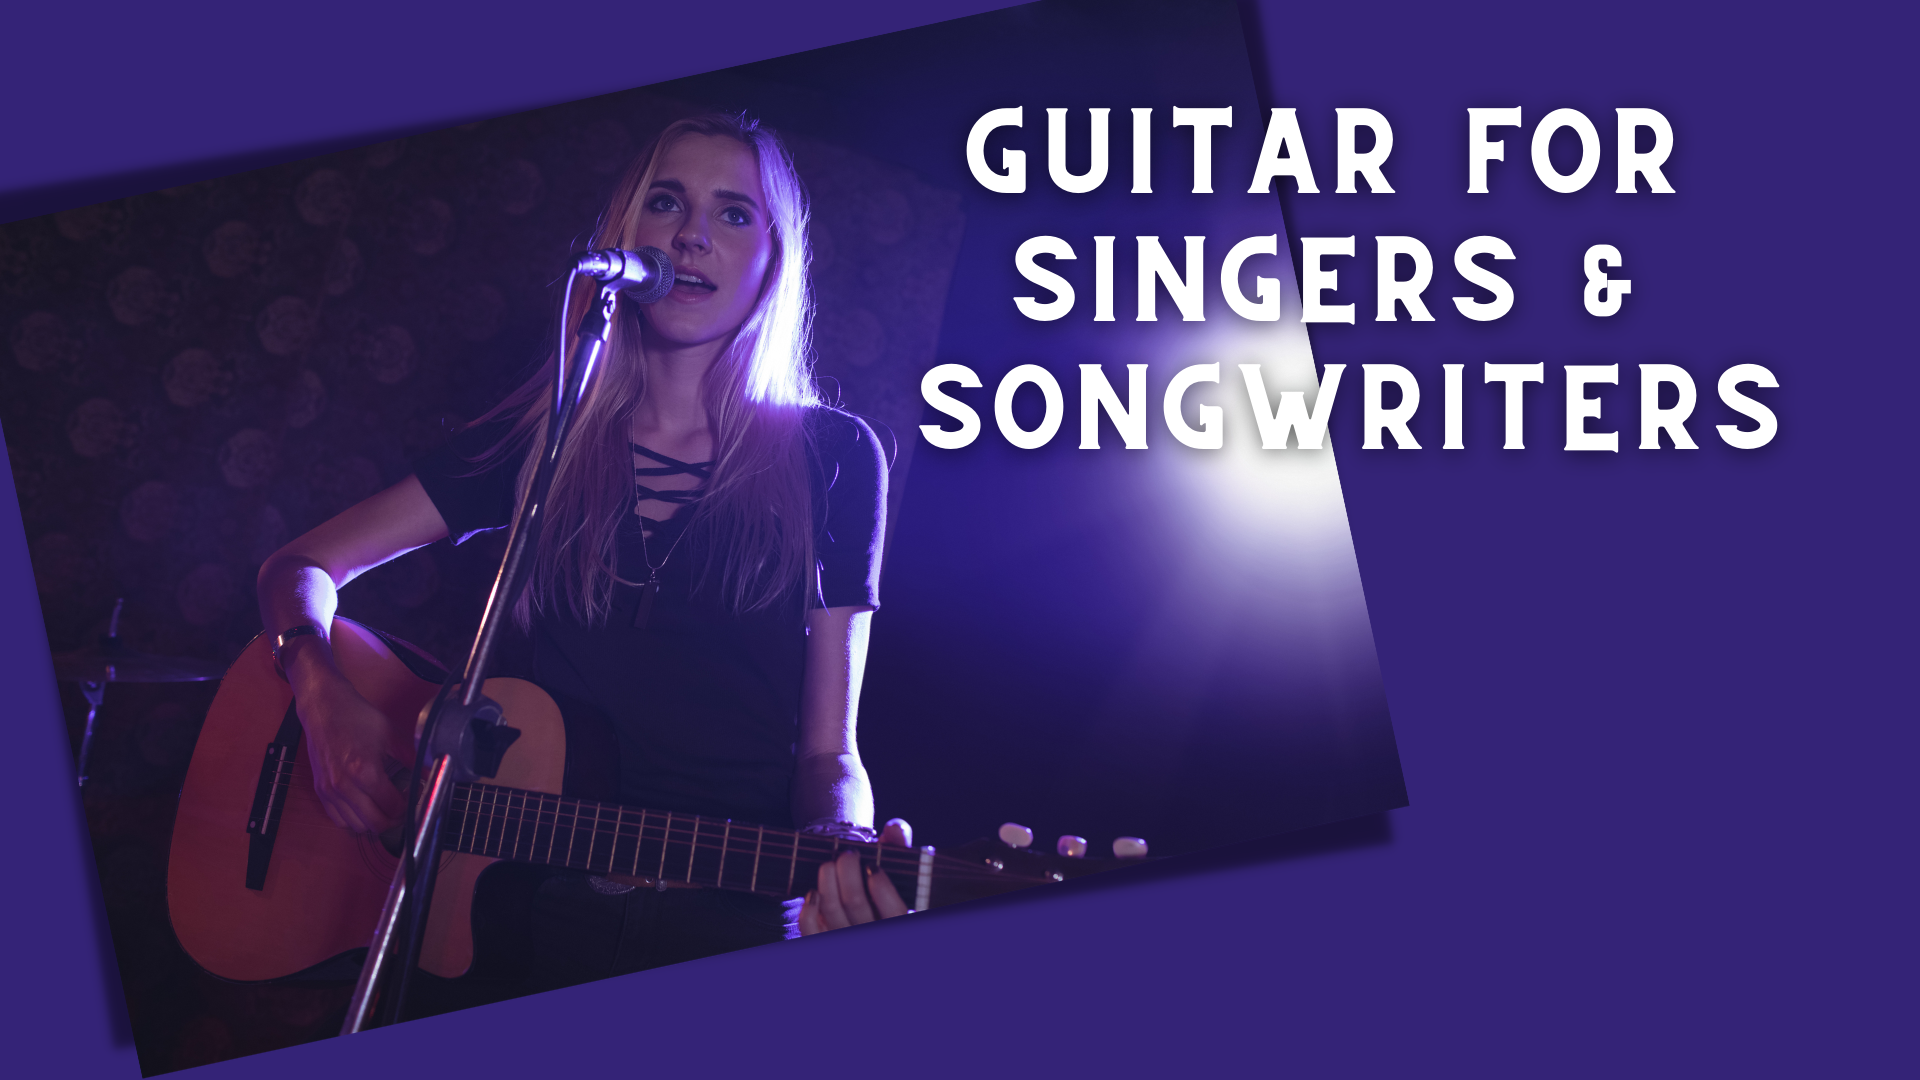 Guitar for Singers & Songwriters